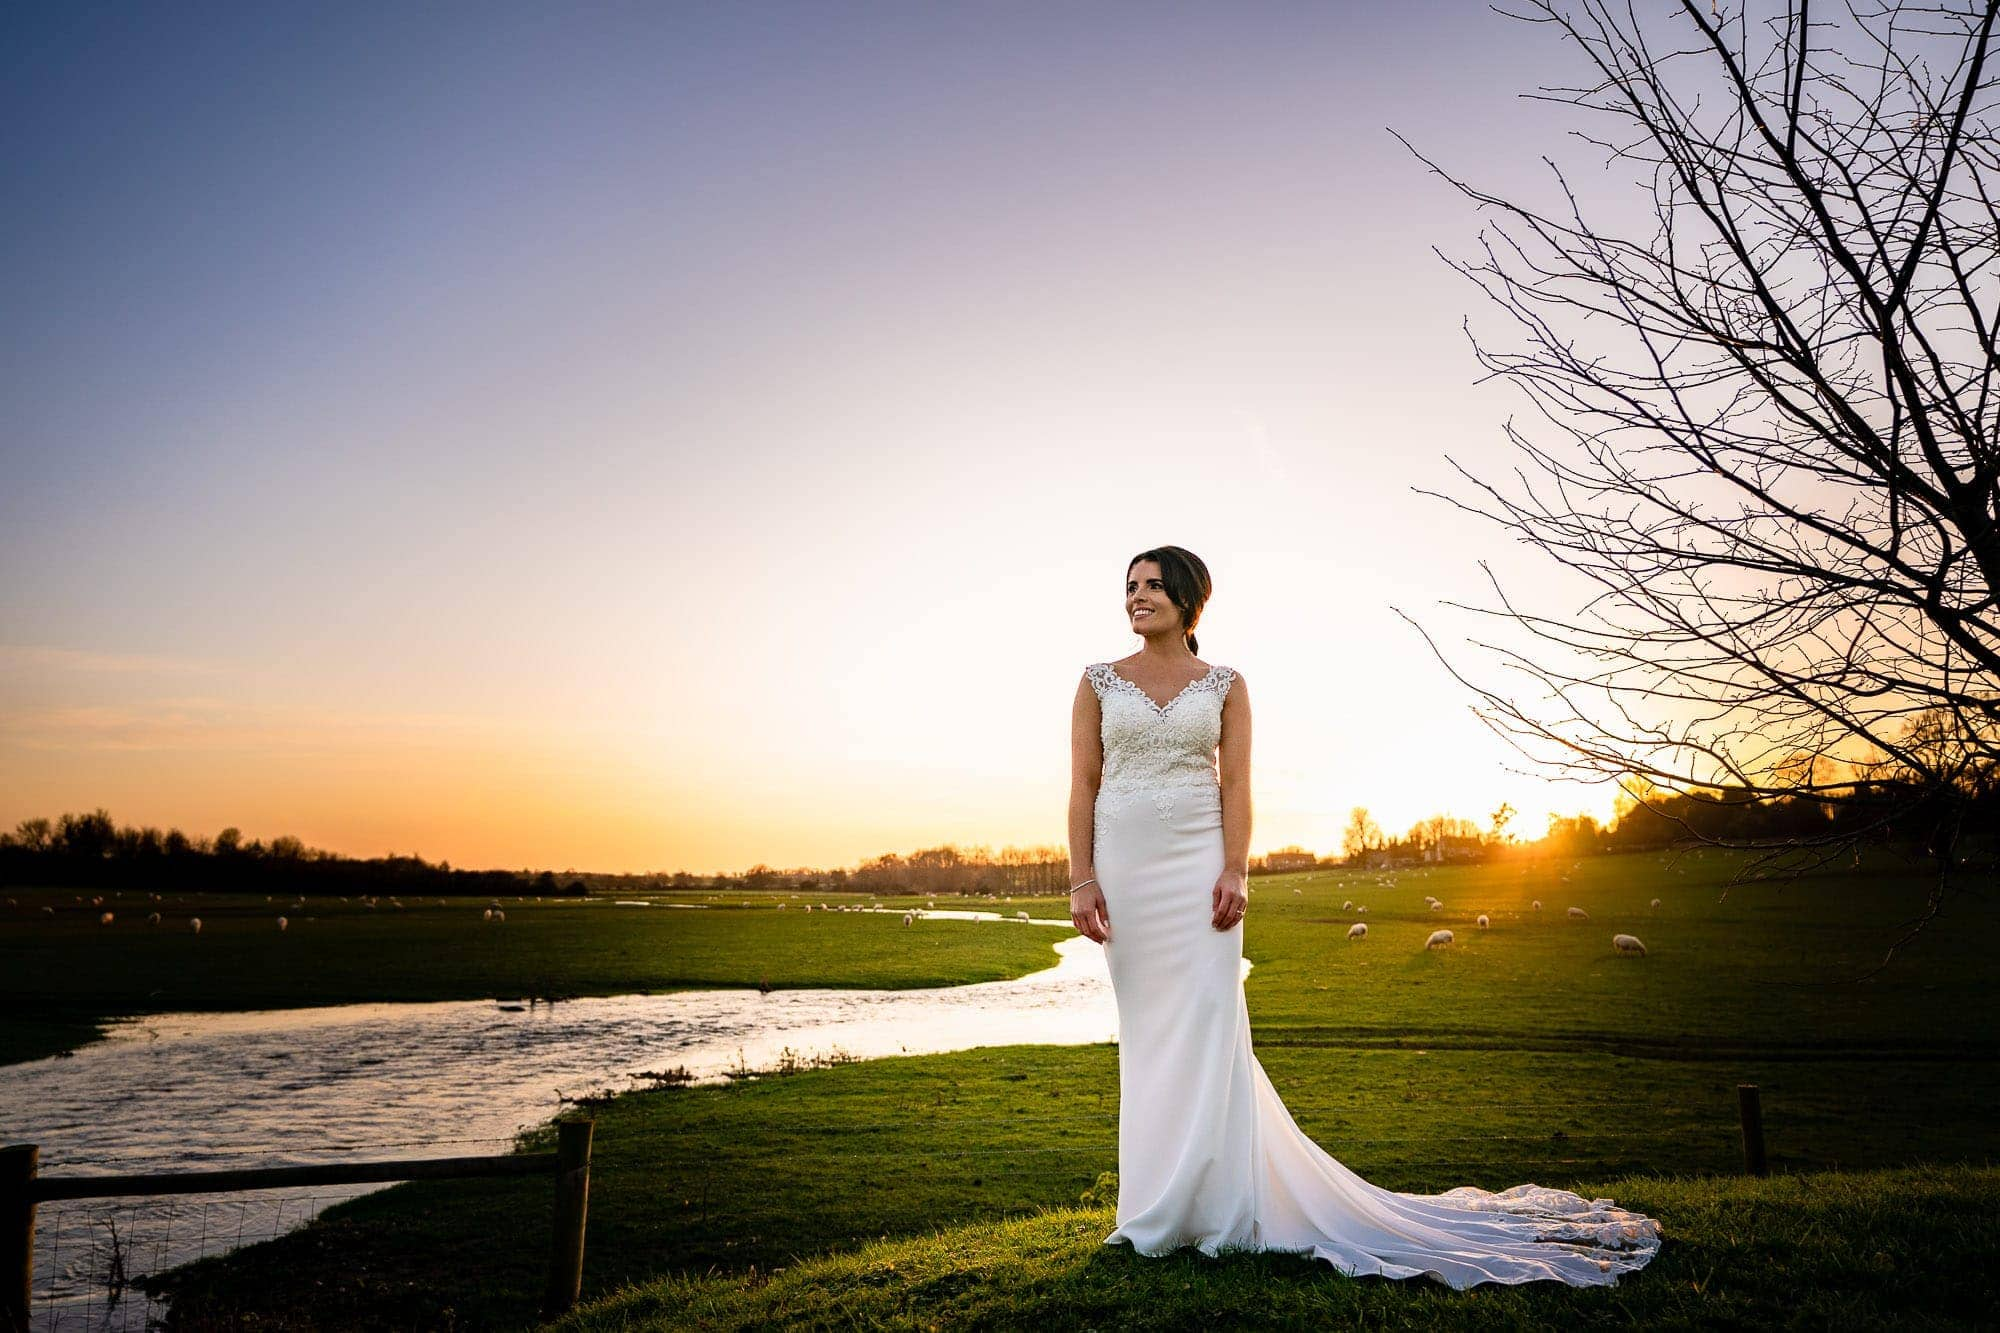 Sunset Portrait of Bride - Farbridge Wedding Photography